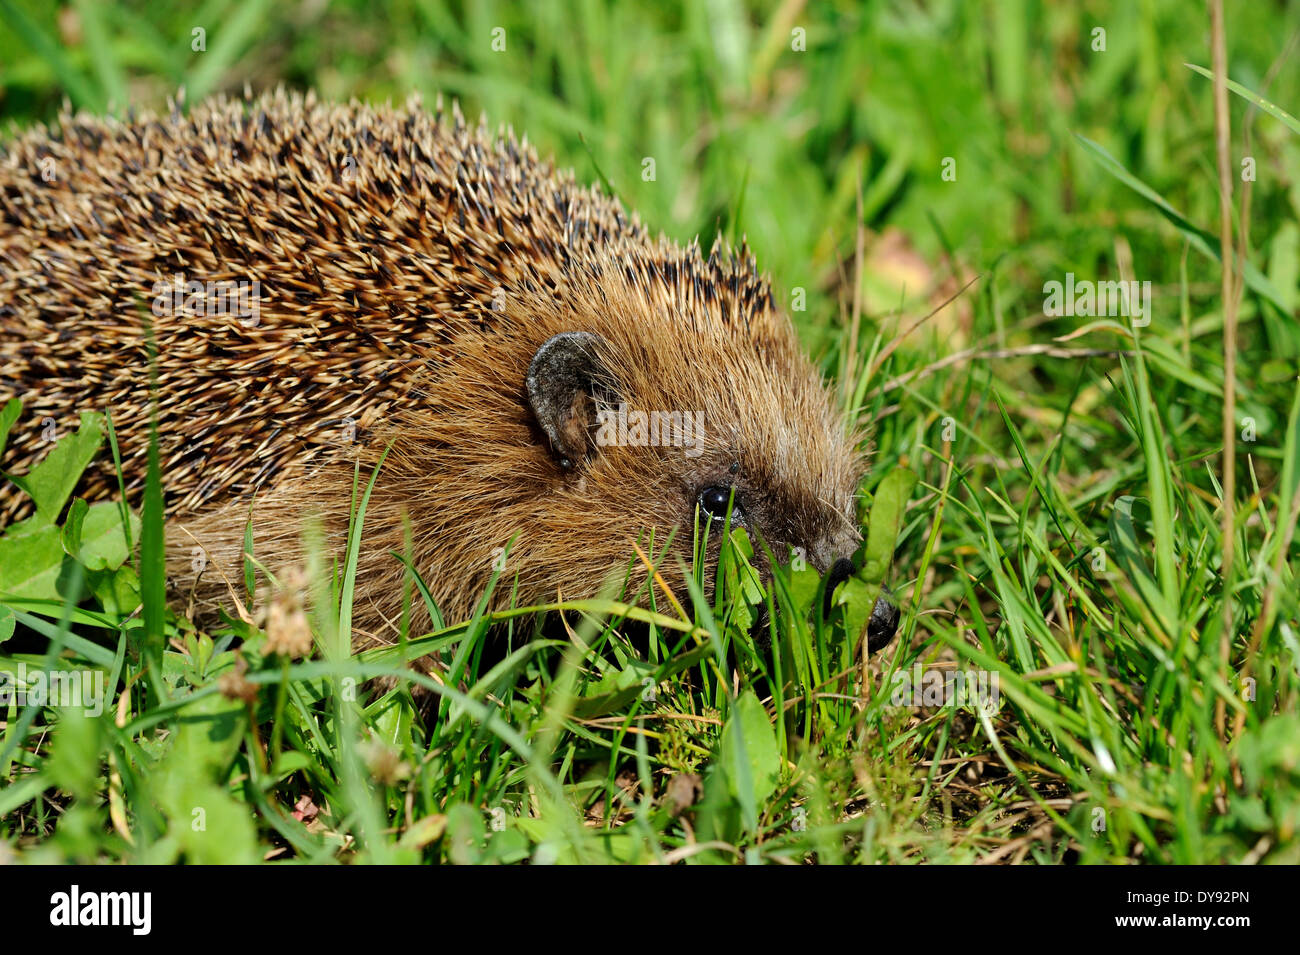 Hedgehog, bristling, Erinaceus europaeus, Common hedgehog, European, summer, hedgehog, summer, animal, animals, Germany, Europe, - Stock Image